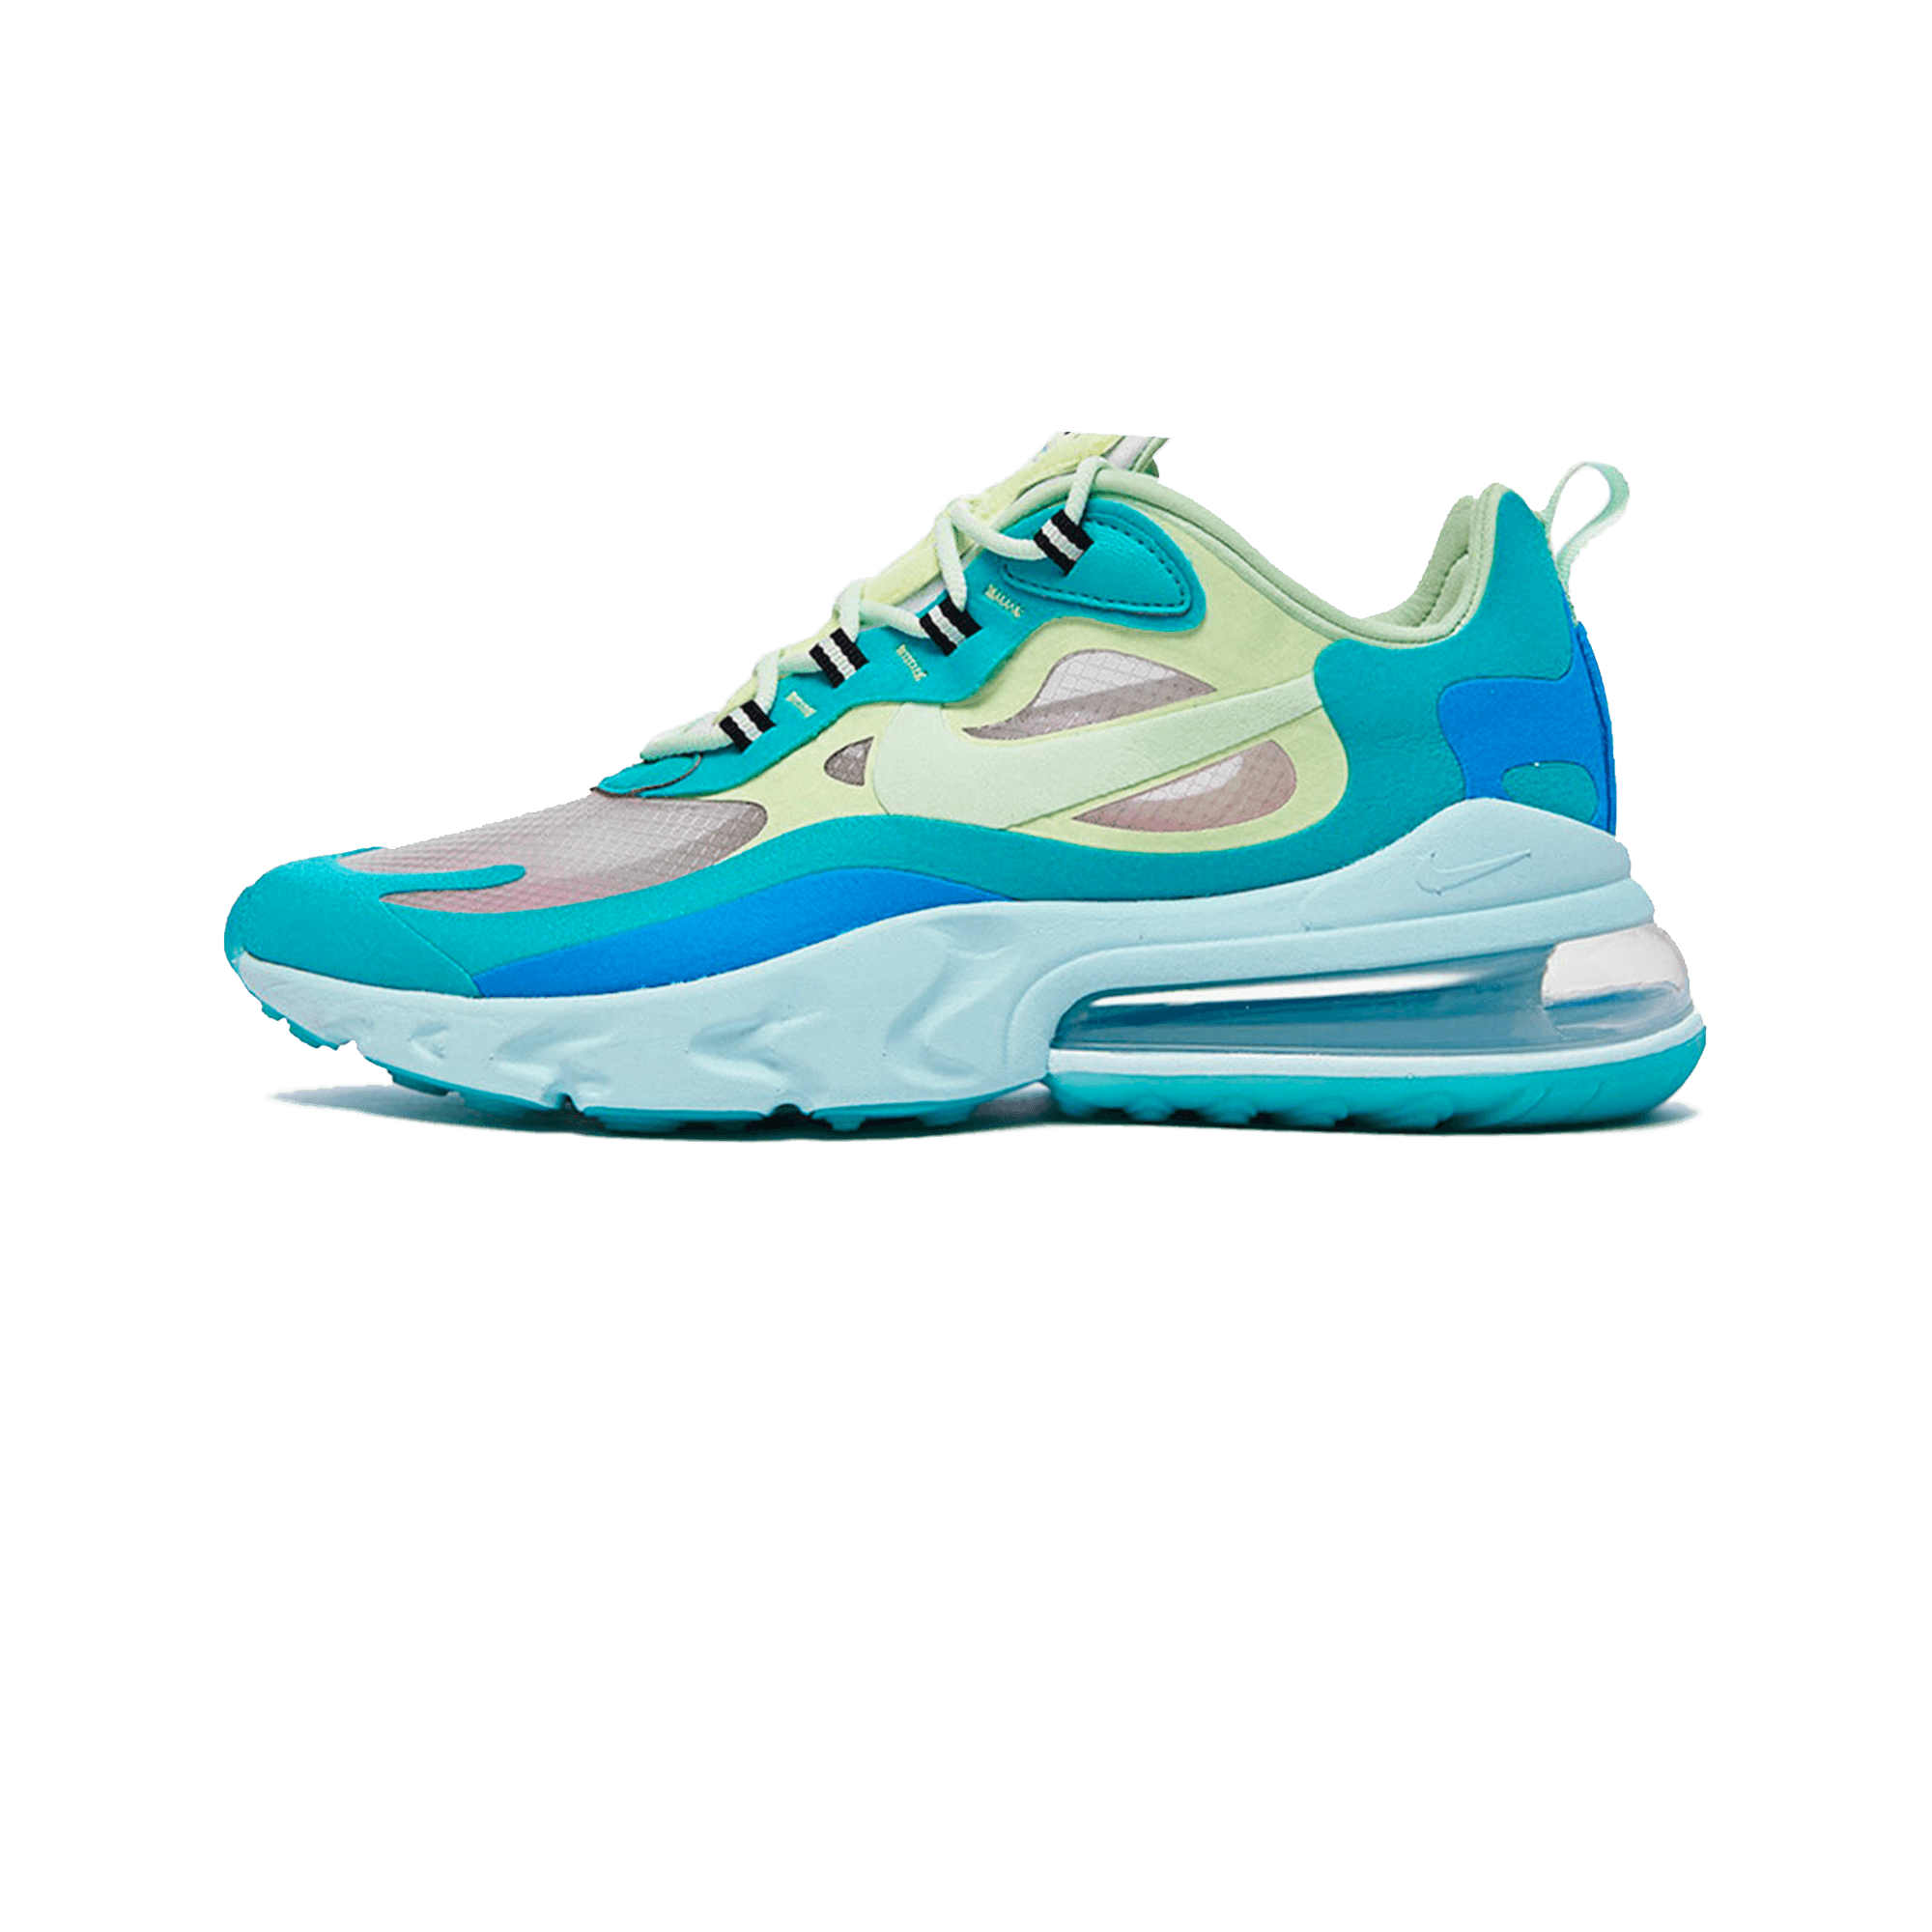 085e0f9501106 Nike Air Max 270 React hyper jade / frosted spruce / barely volt - Men ...